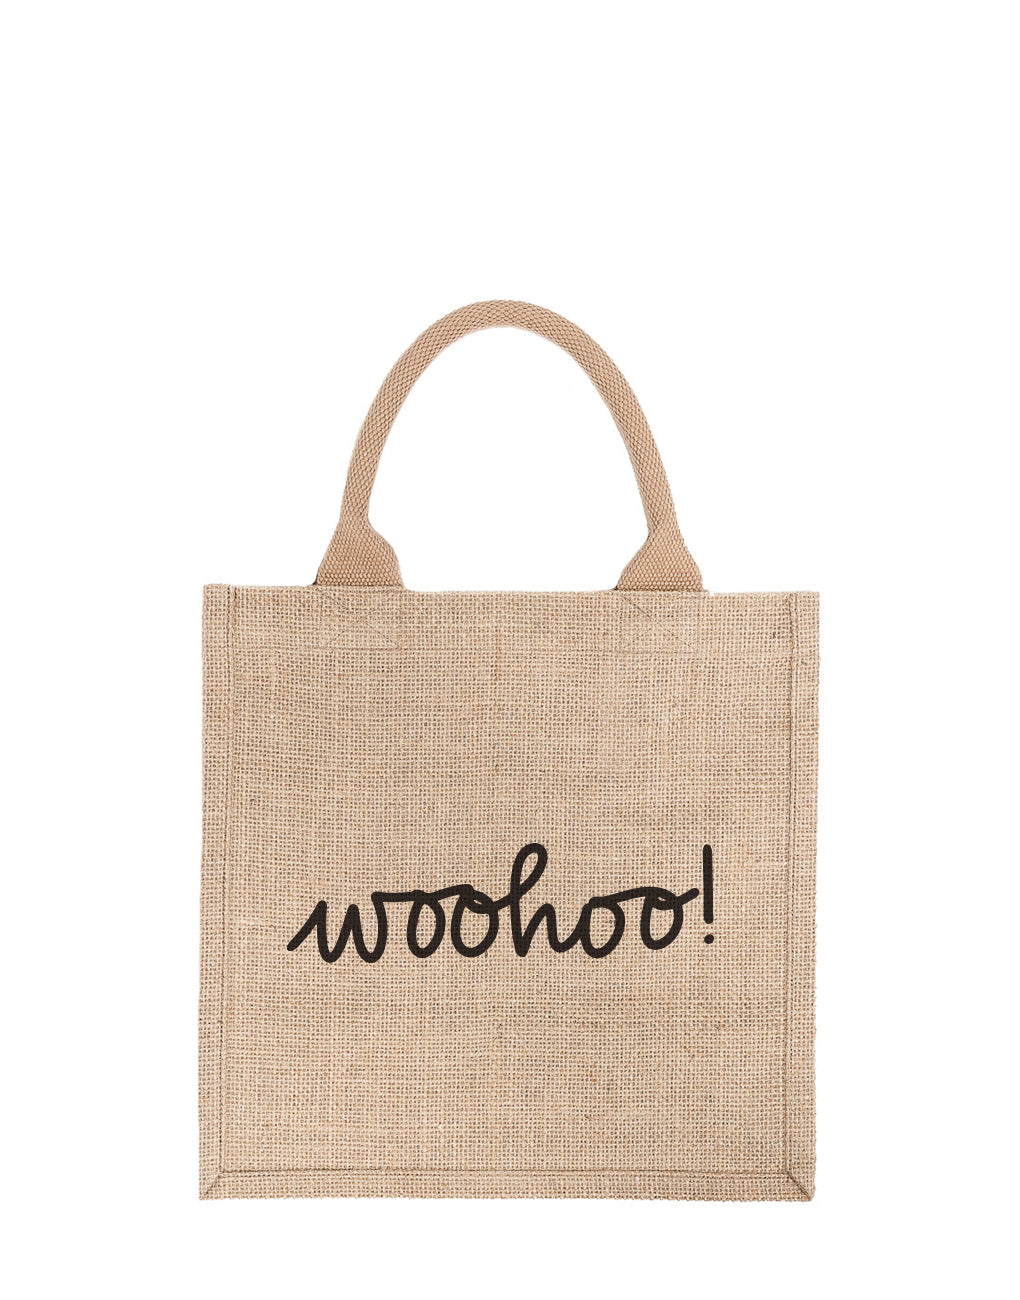 Large Woohoo! Reusable Gift Tote In Black Font | The Little Market